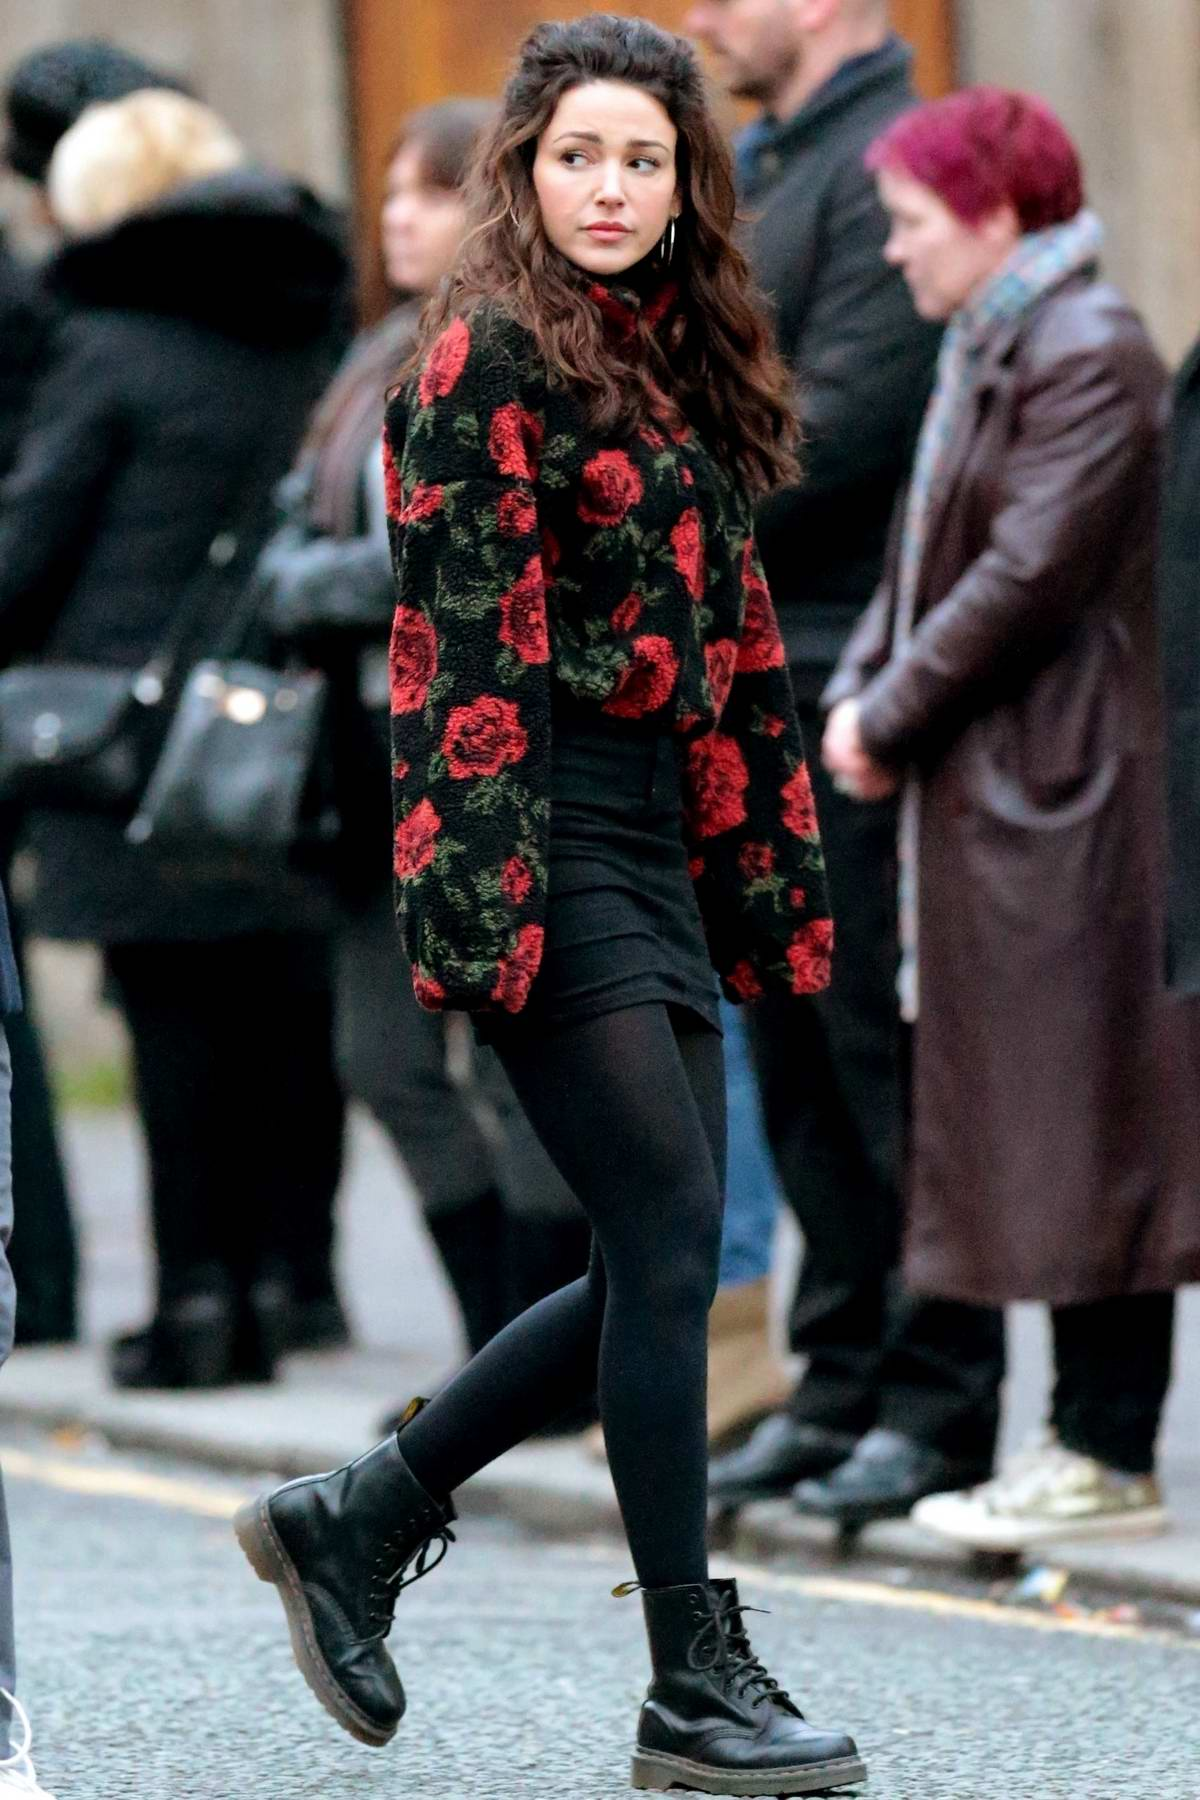 Michelle Keegan seen while filming scenes for upcoming drama 'Brassic' in Lancashire, UK